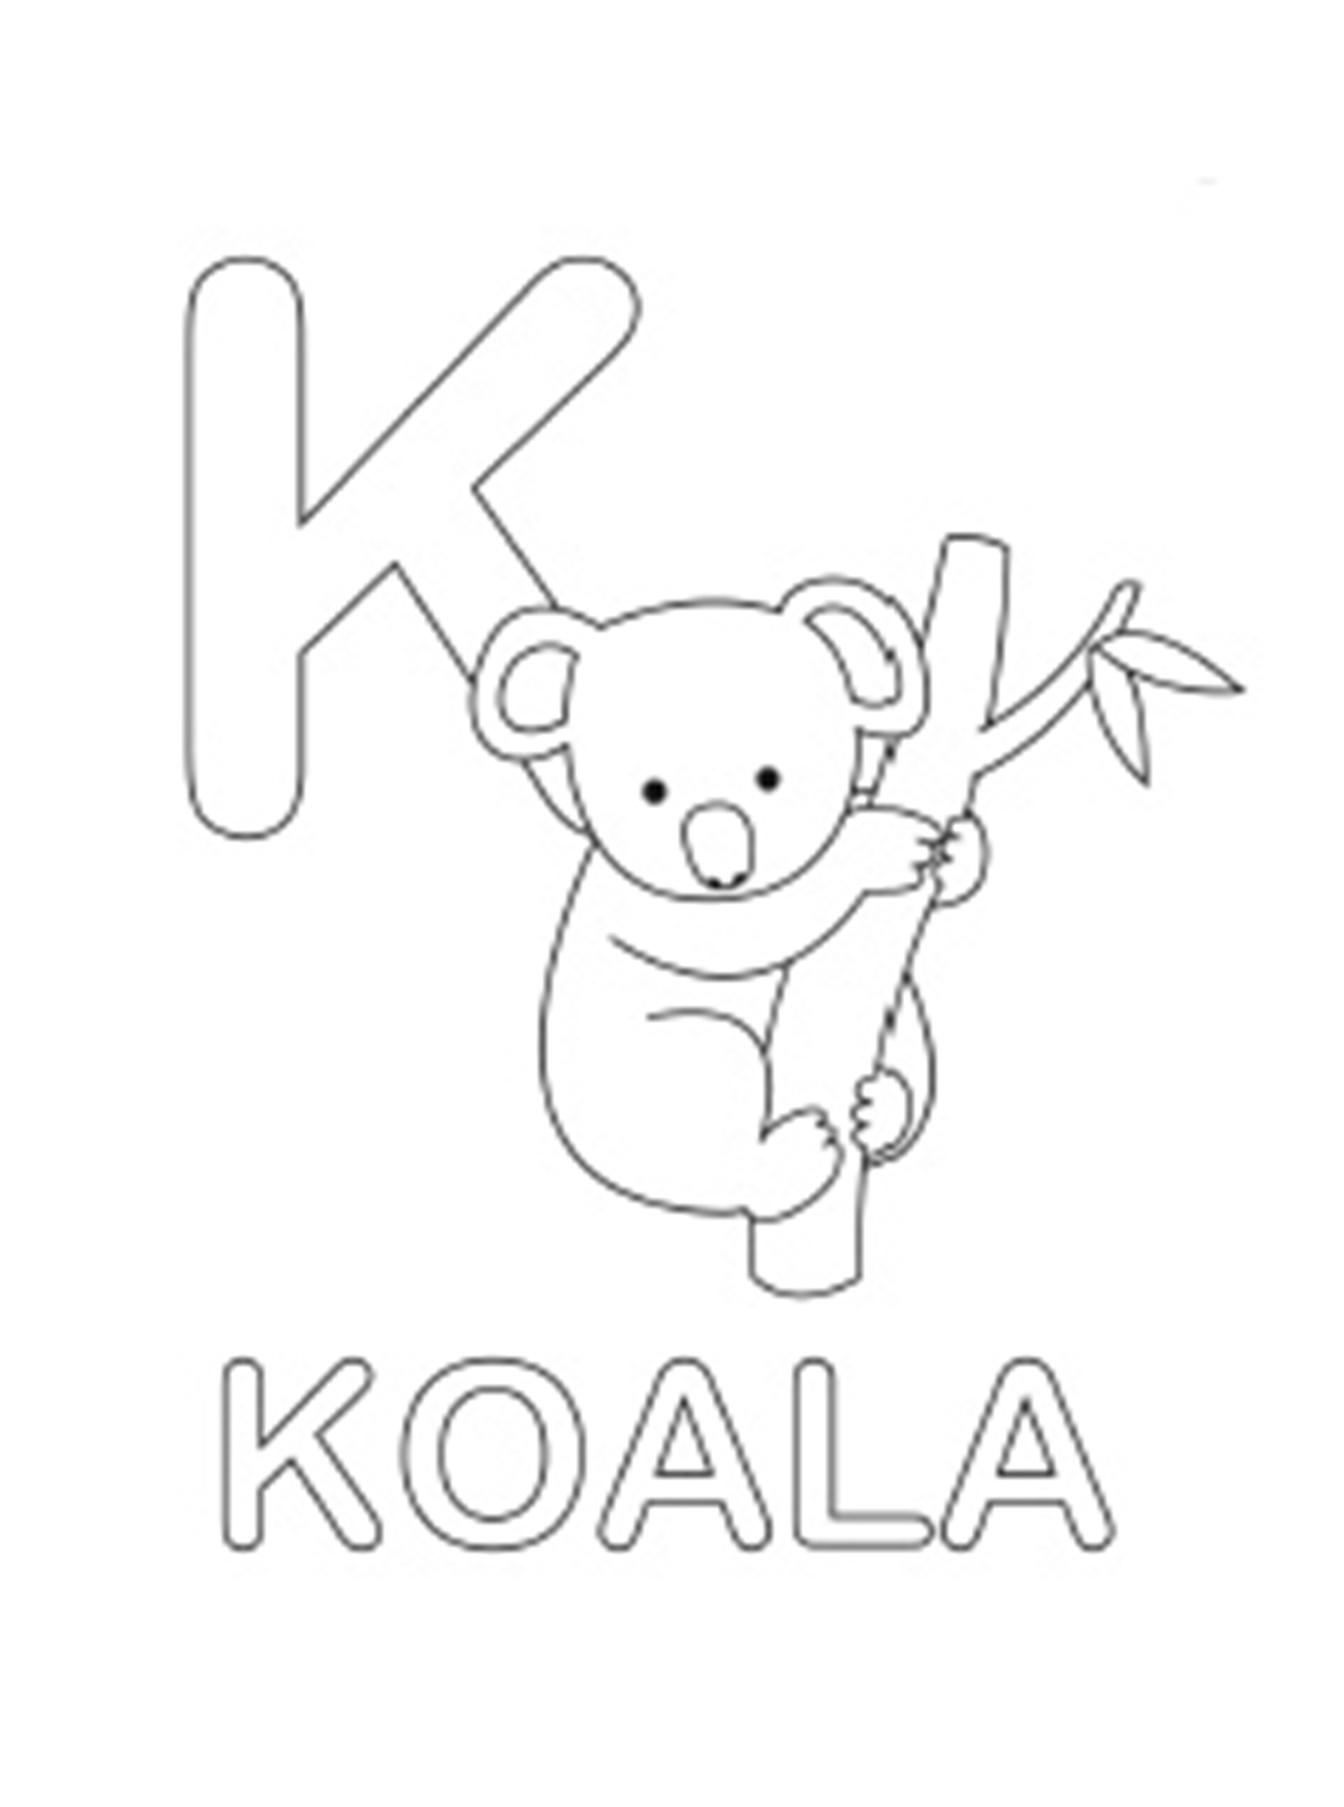 The Best Free Koala Drawing Images Download From 691 Free